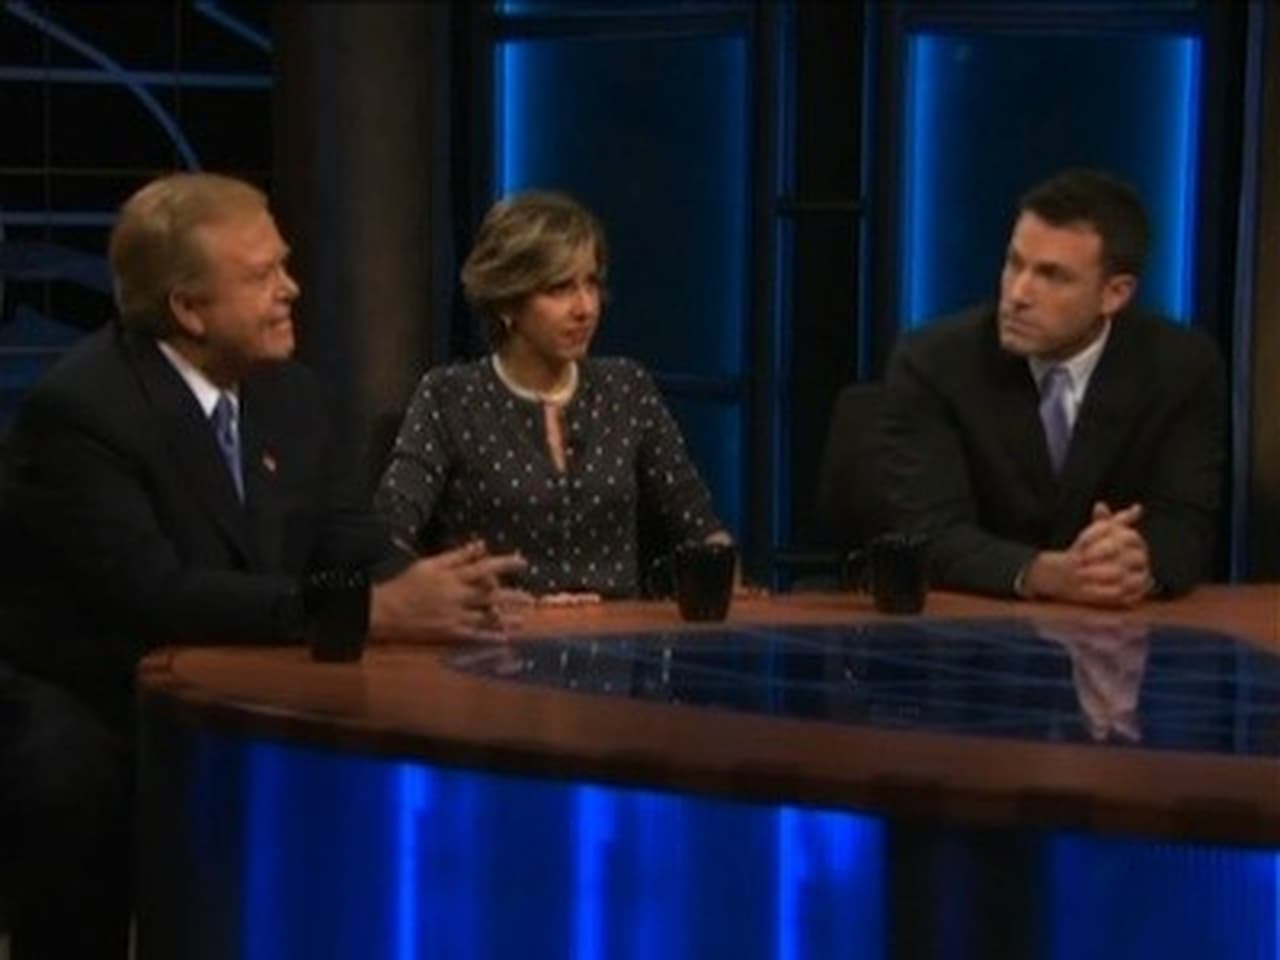 Real Time with Bill Maher - Season 4 Episode 19 : October 13, 2006